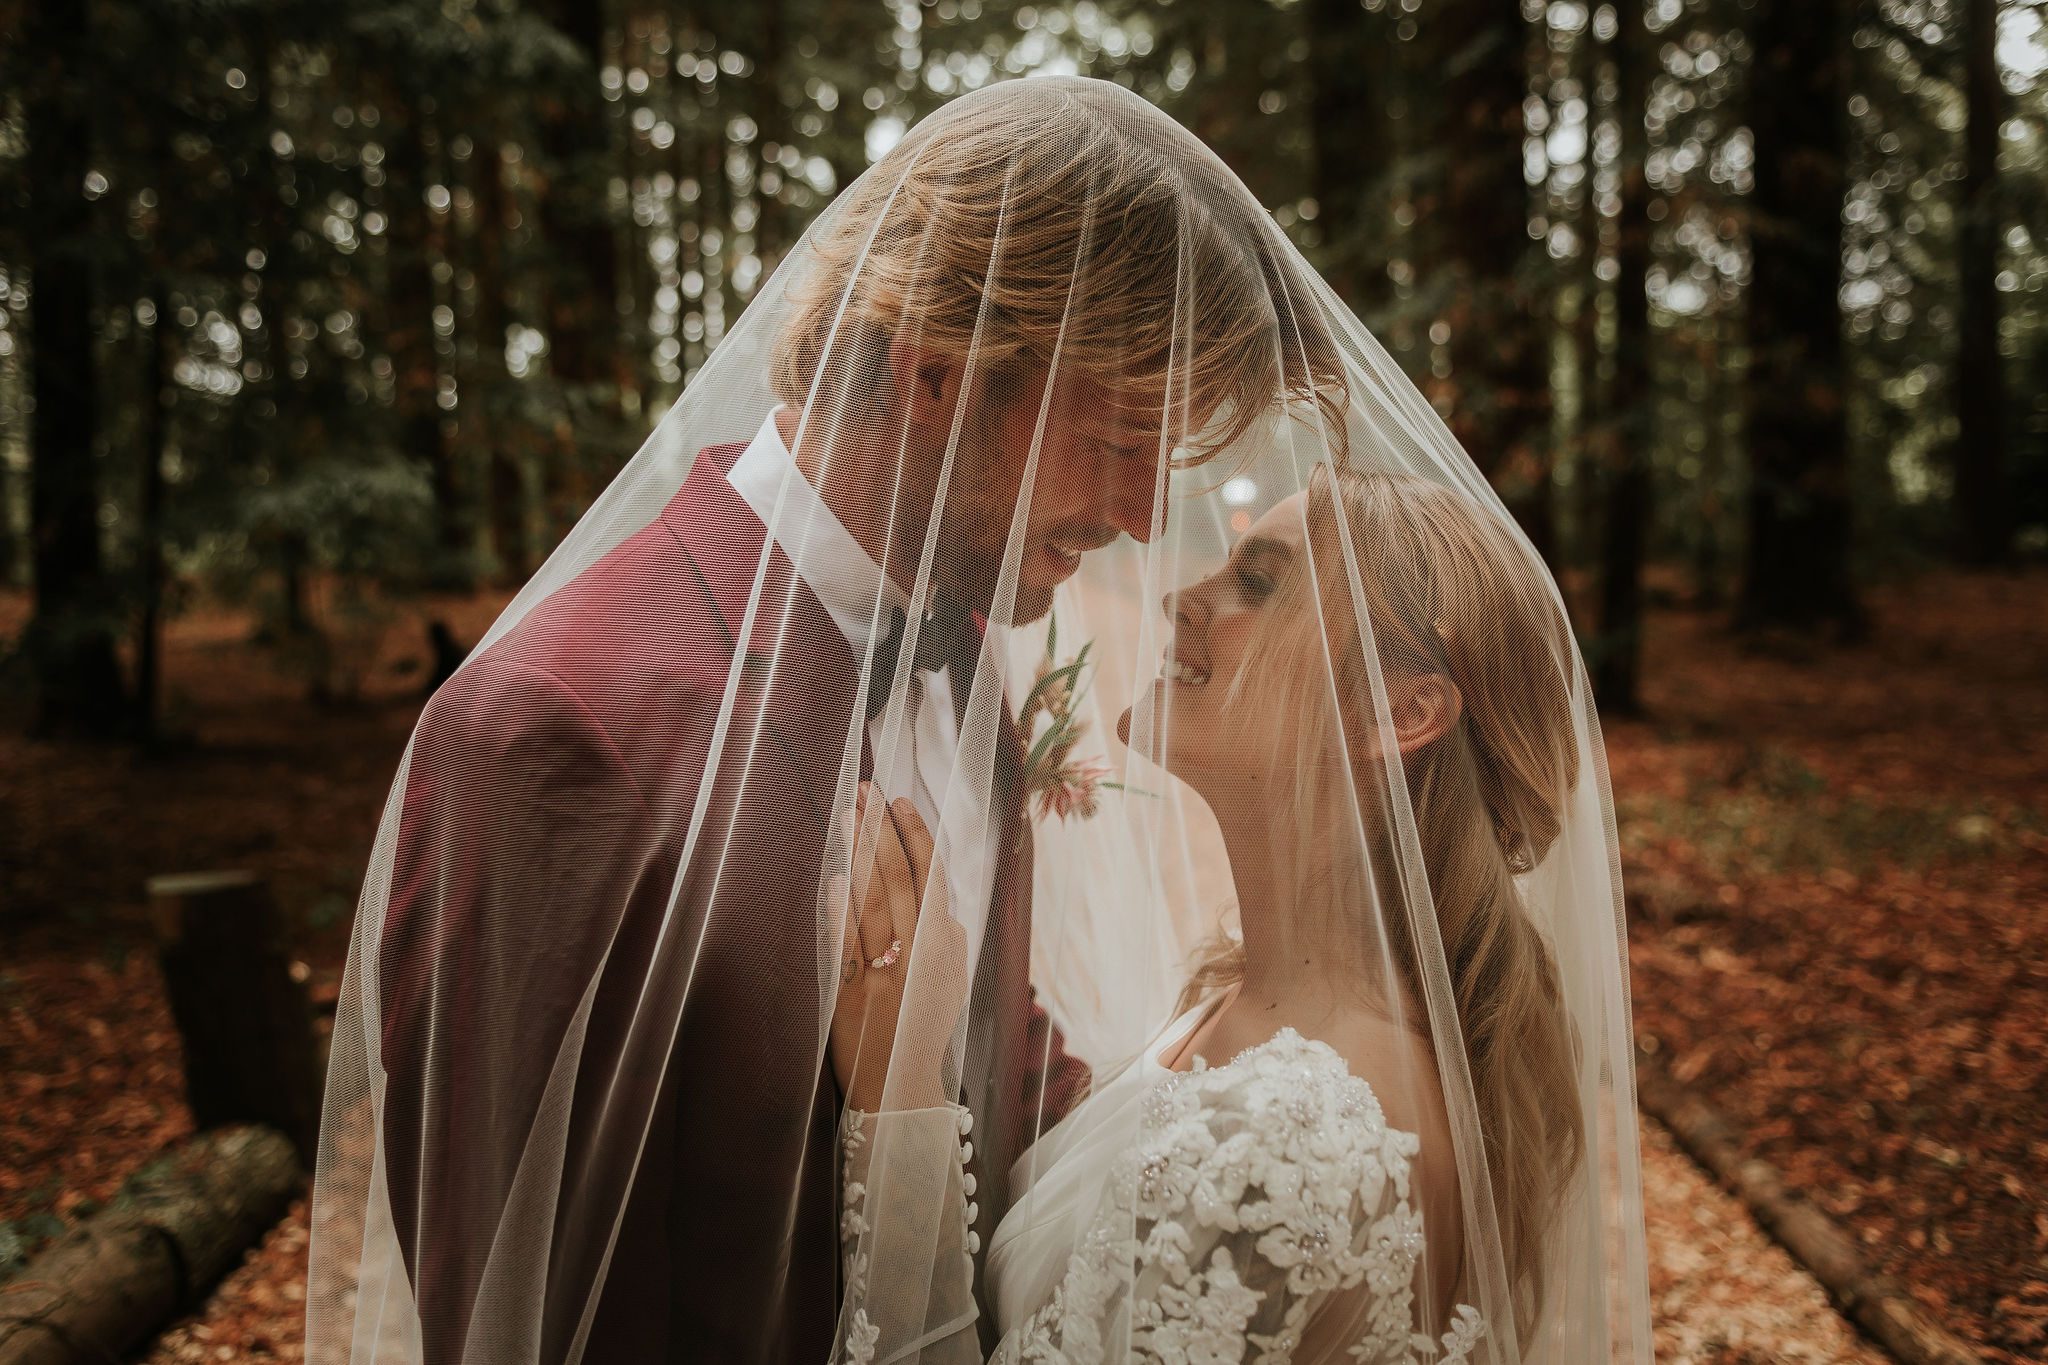 modern woodland wedding - romantic wedding photography - bride and groom under veil